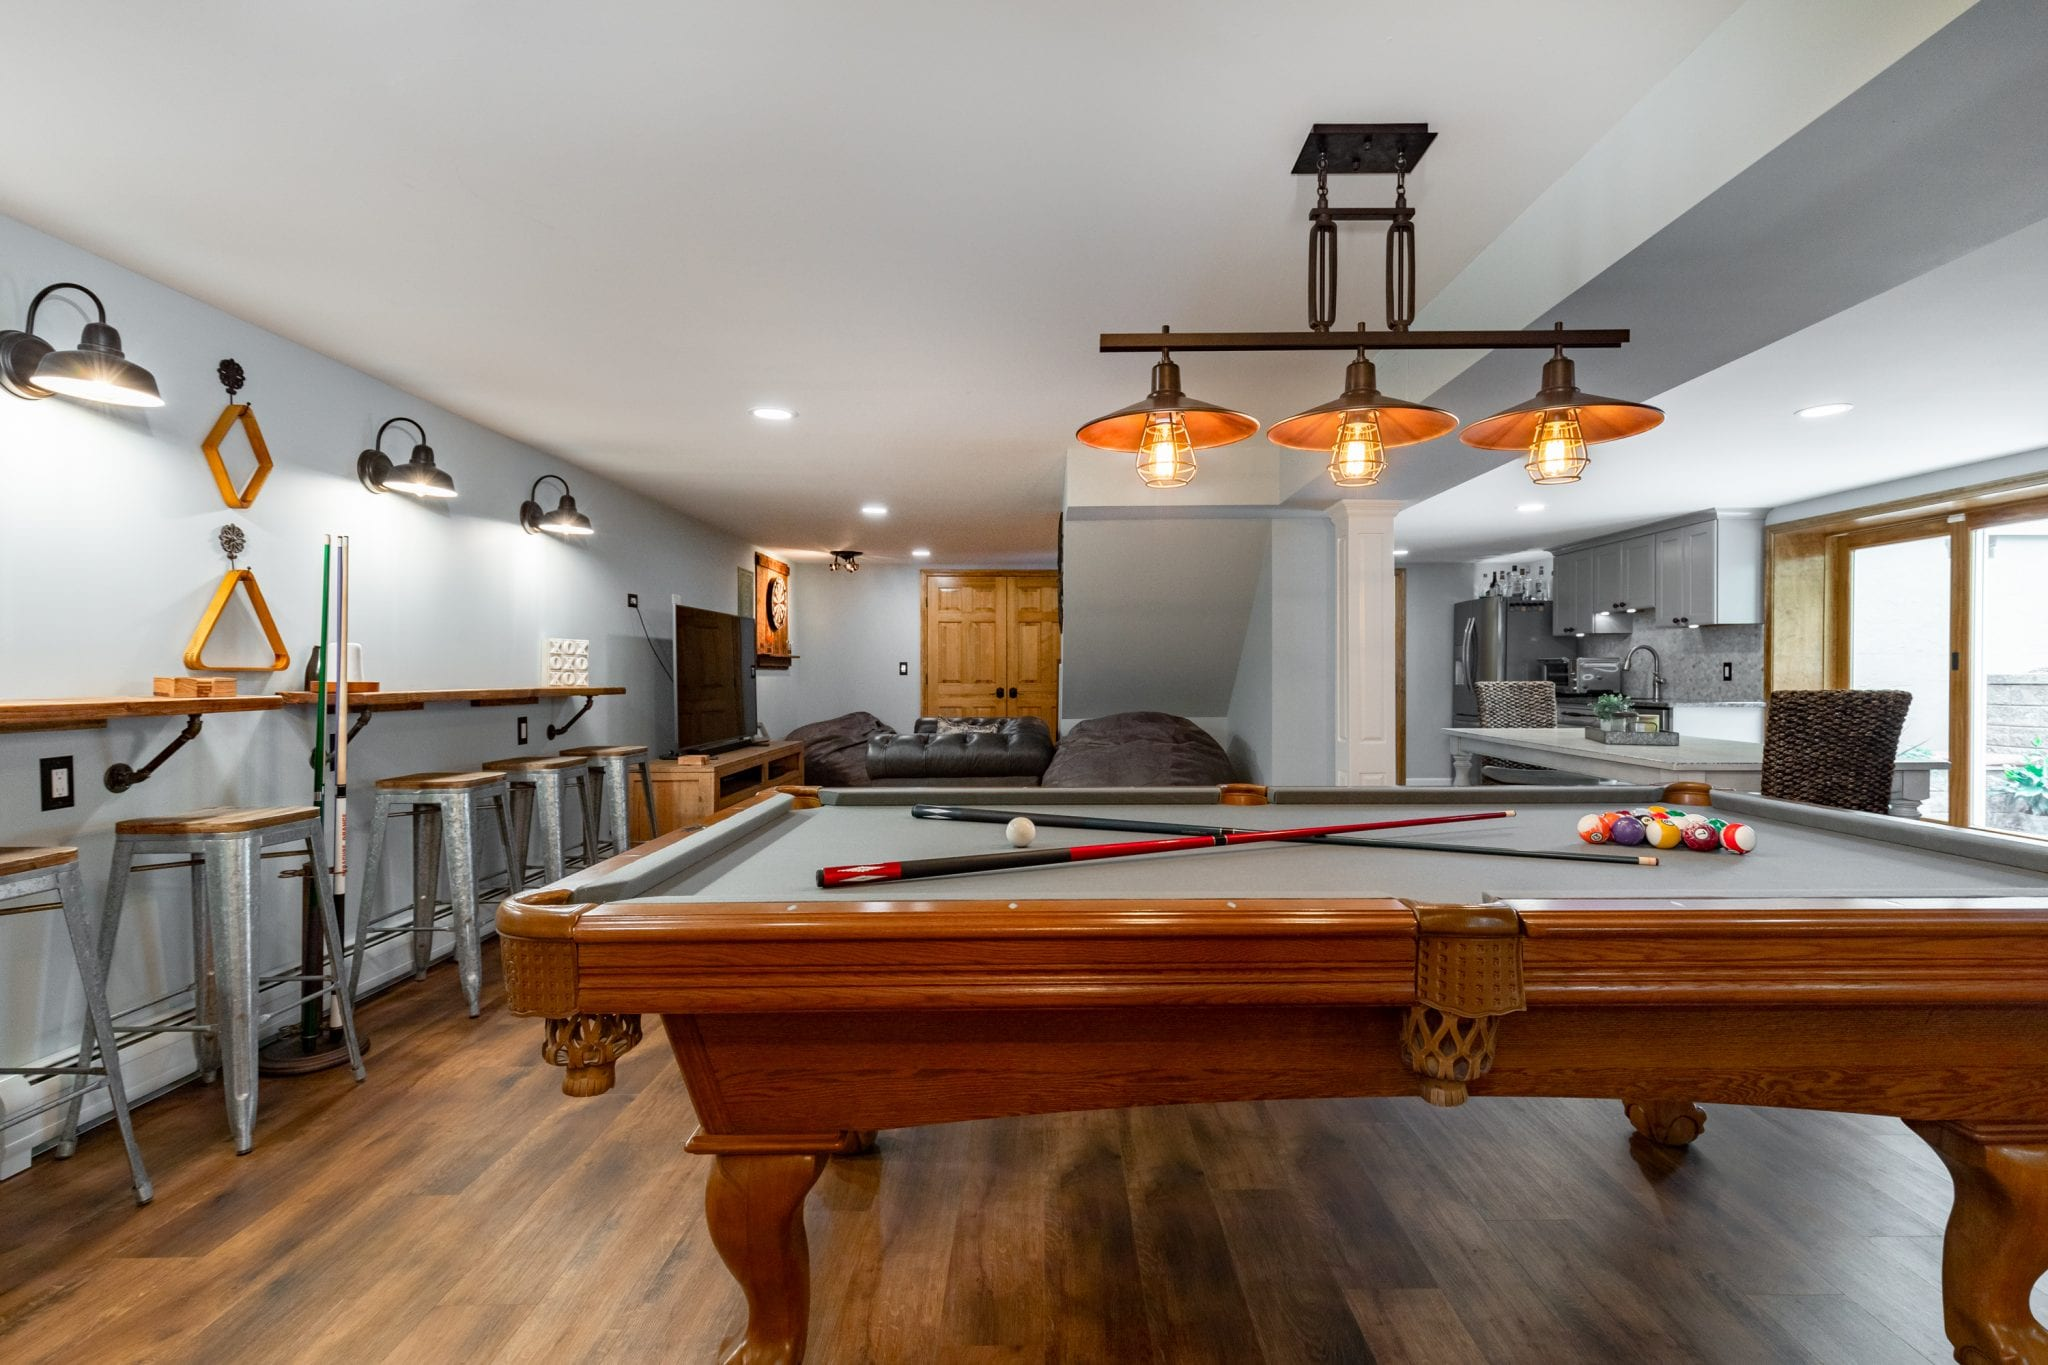 living room space with a pool table of a detached basement